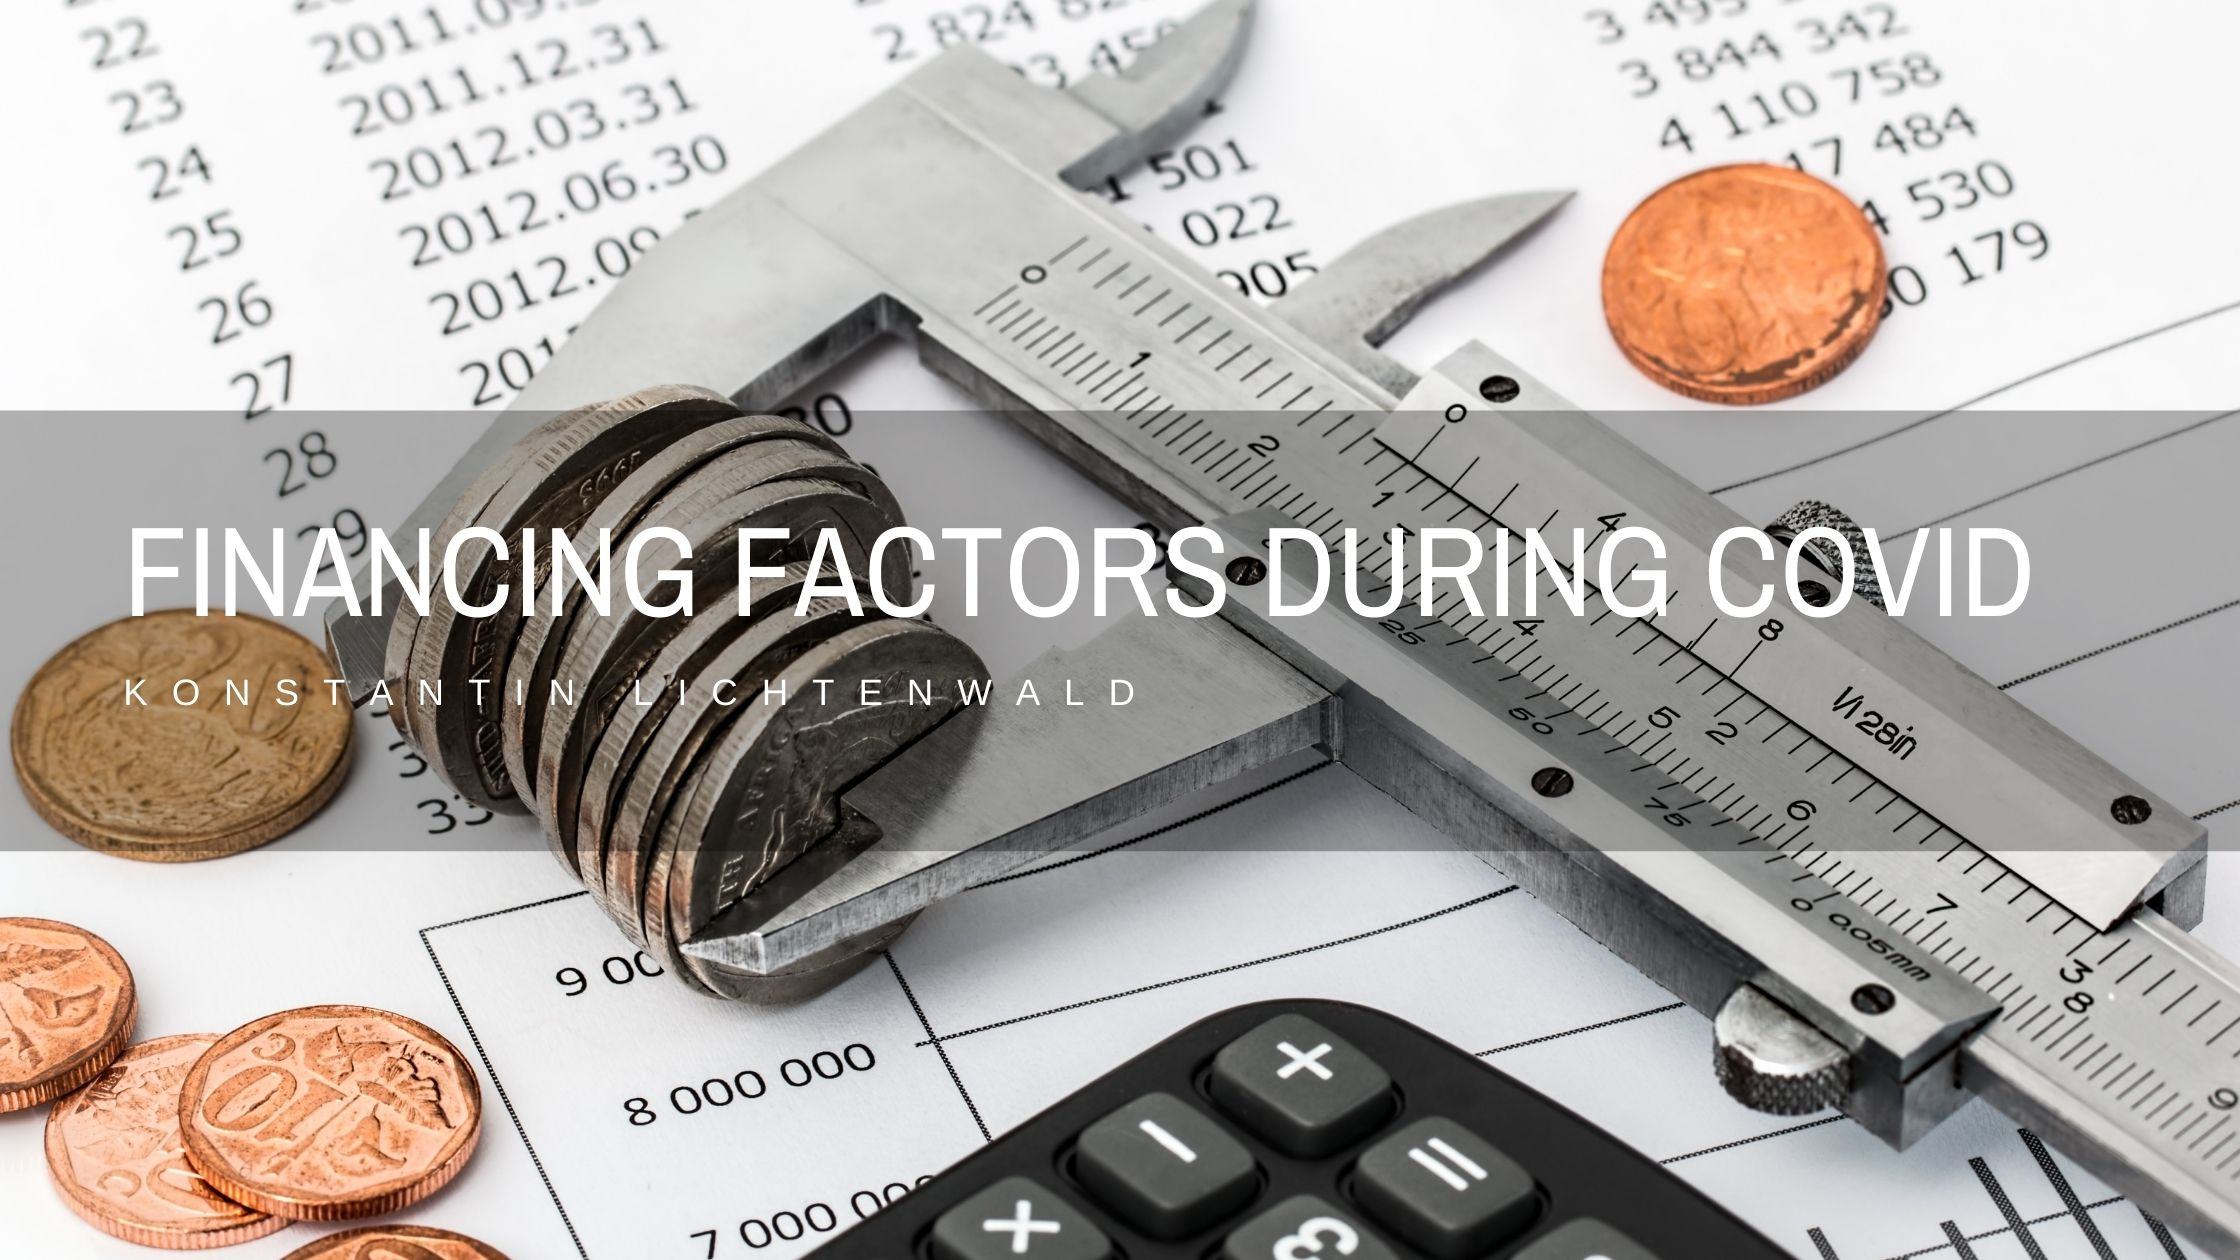 Konstantin Lichtenwald Examines Financing Factors to Consider During COVID